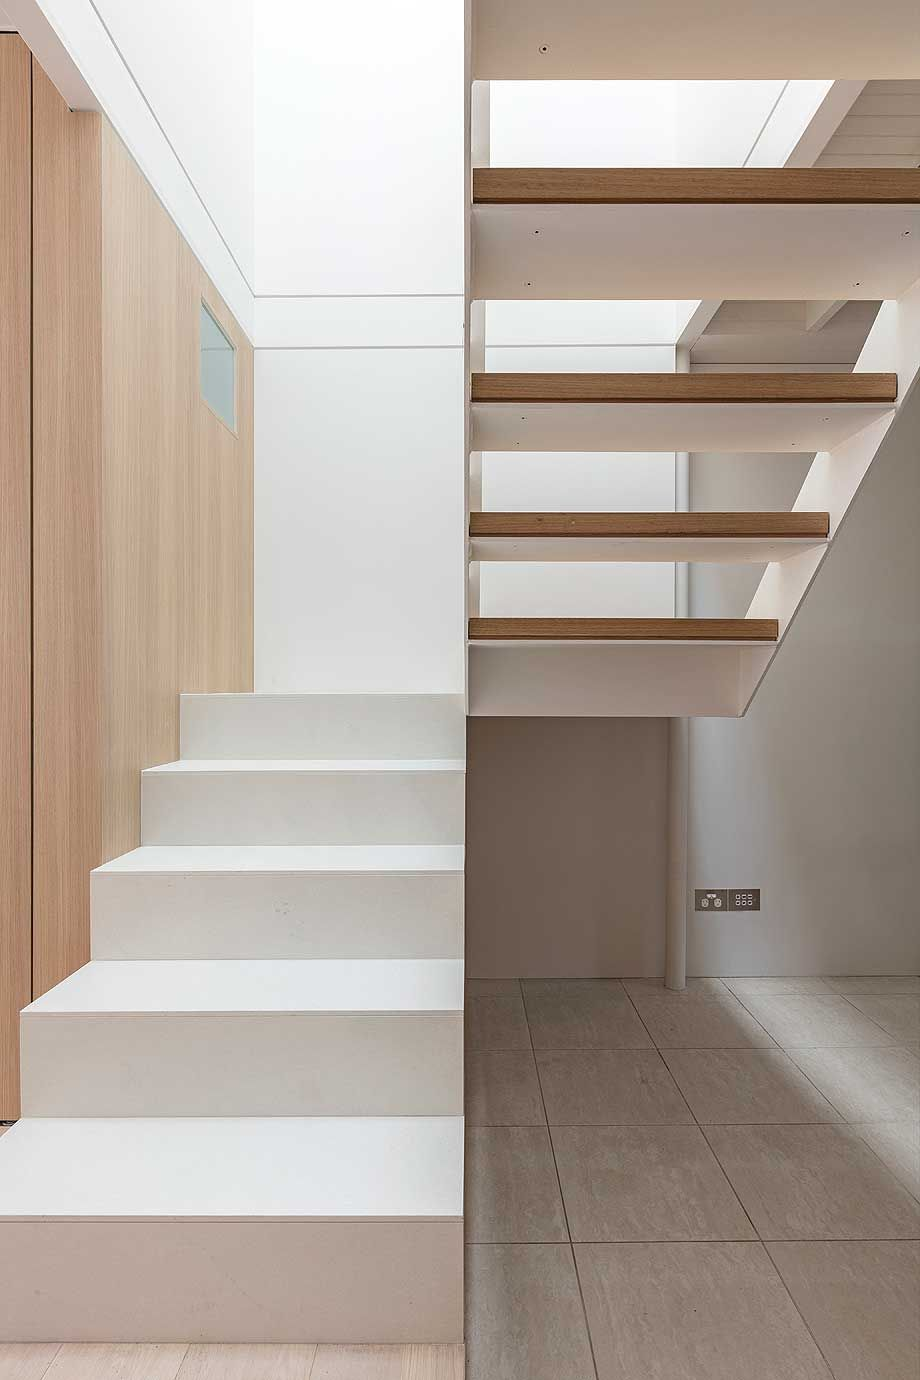 Surry Hills House Benn Penna Architects 3 Escaleras  # Muebles Nadir Escalada